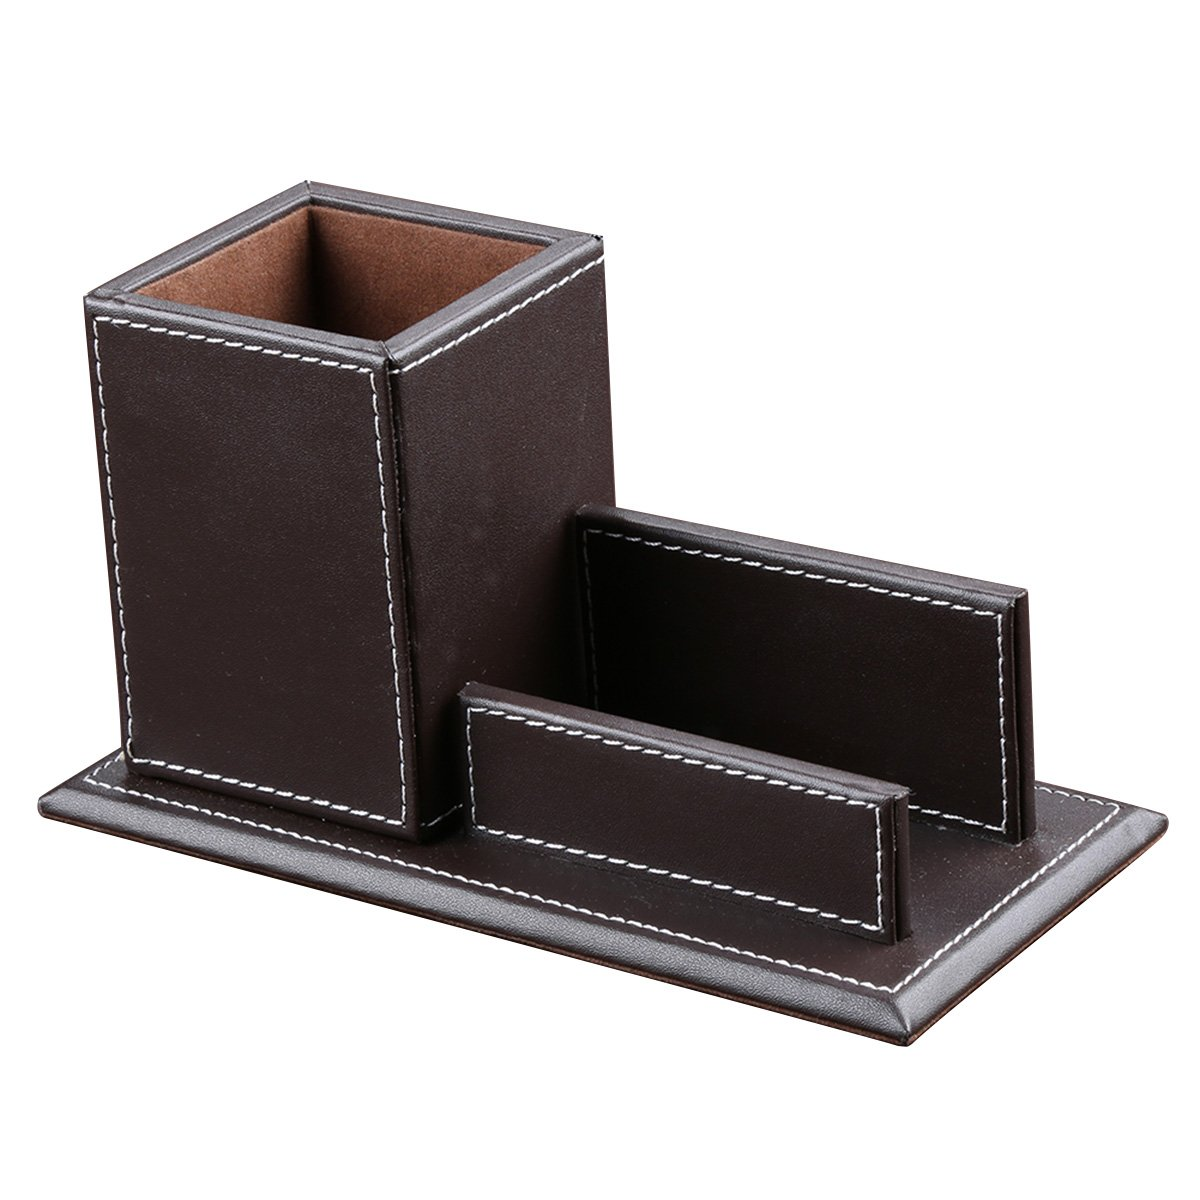 KINGFOM PU Leather Square Pens Pencils Holder Desk Organizer Office Desk Accessories Container Box ZhongBang A125